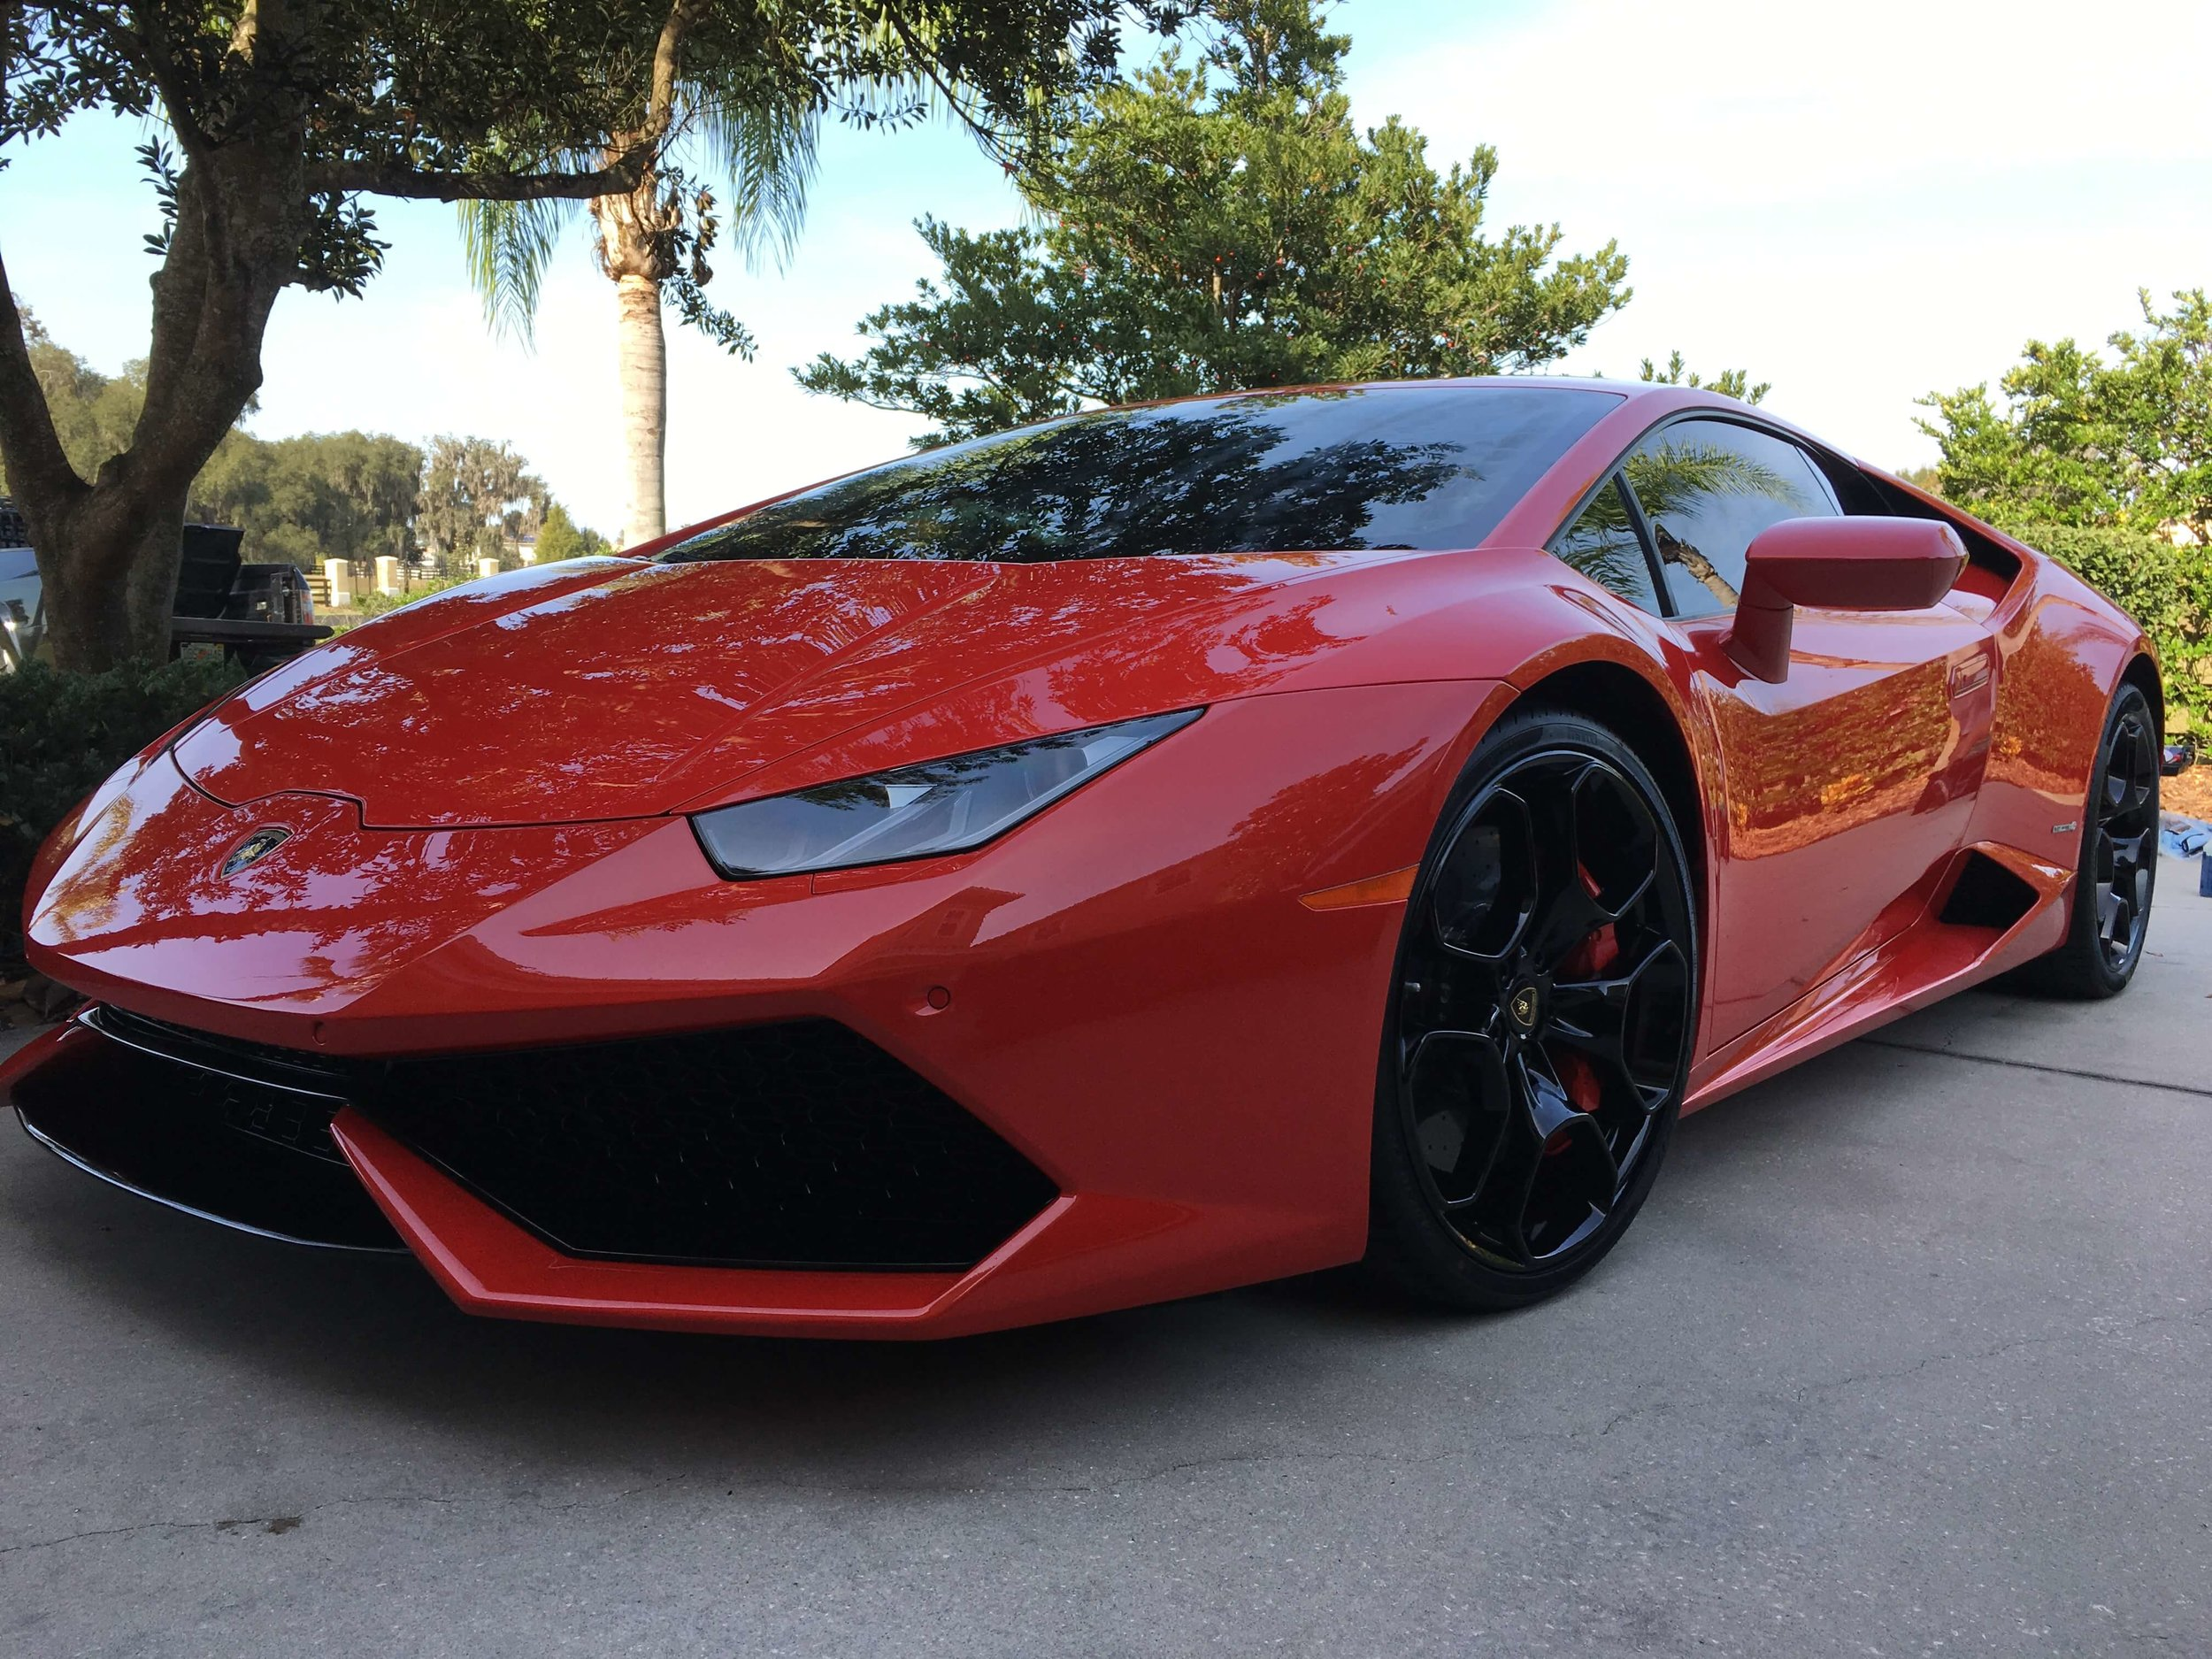 lamborghini-huracan-tampa-mobile-luxury-car-high-end-auto-exotic-detailing-professional.JPG